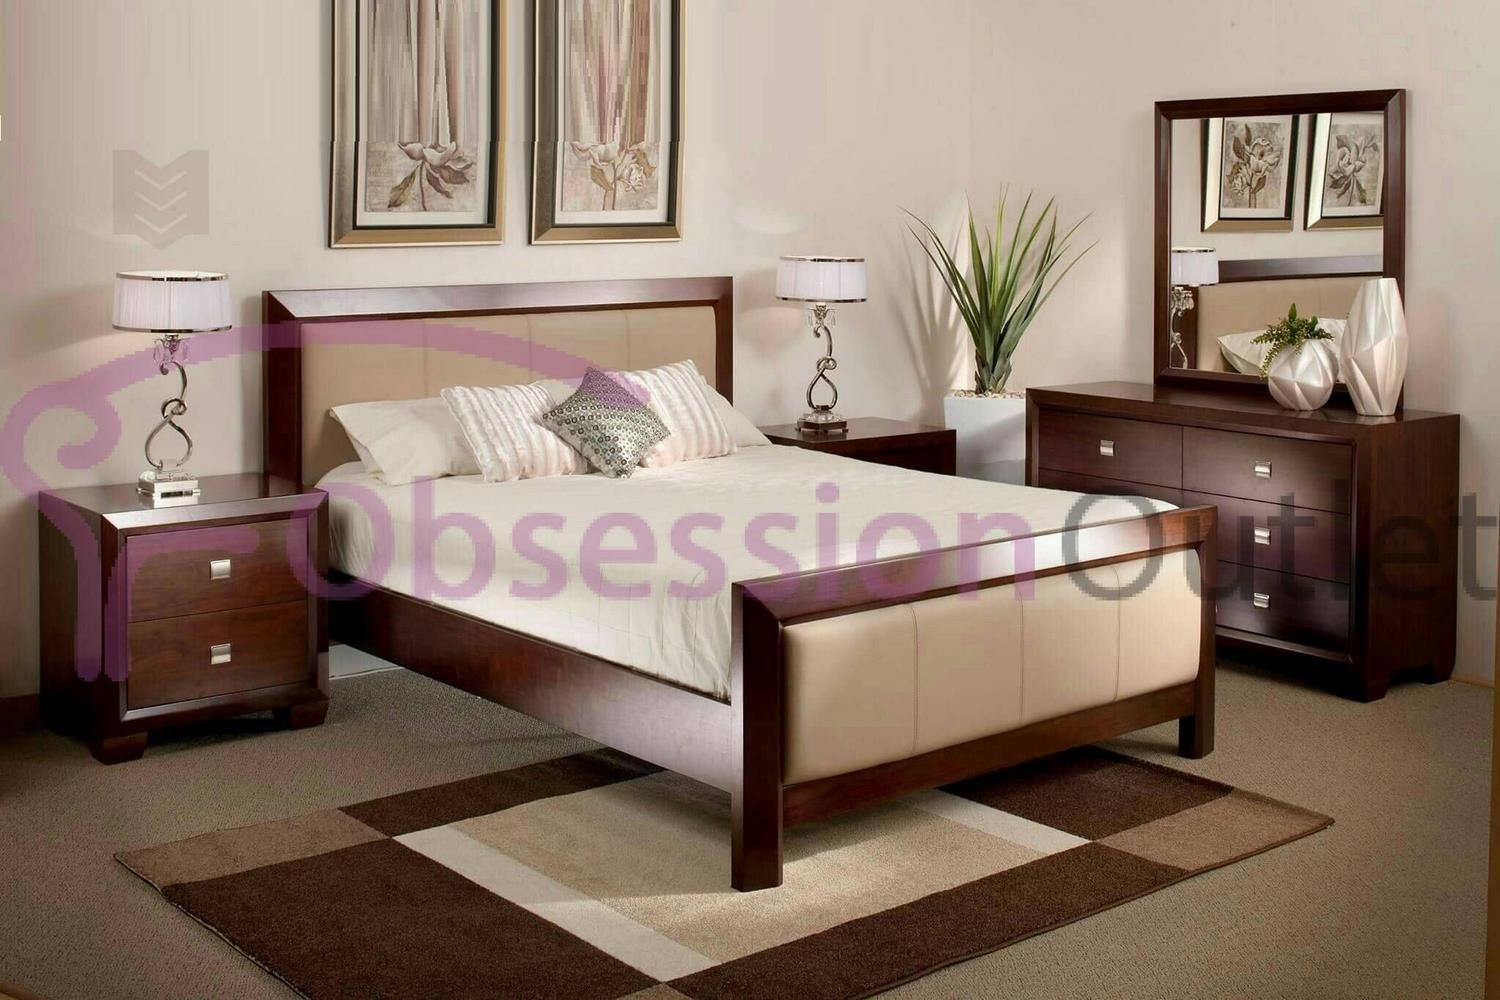 Sku Spb46 With Images Buy Bedroom Furniture Bedroom Furniture Sets Bedroom Sets